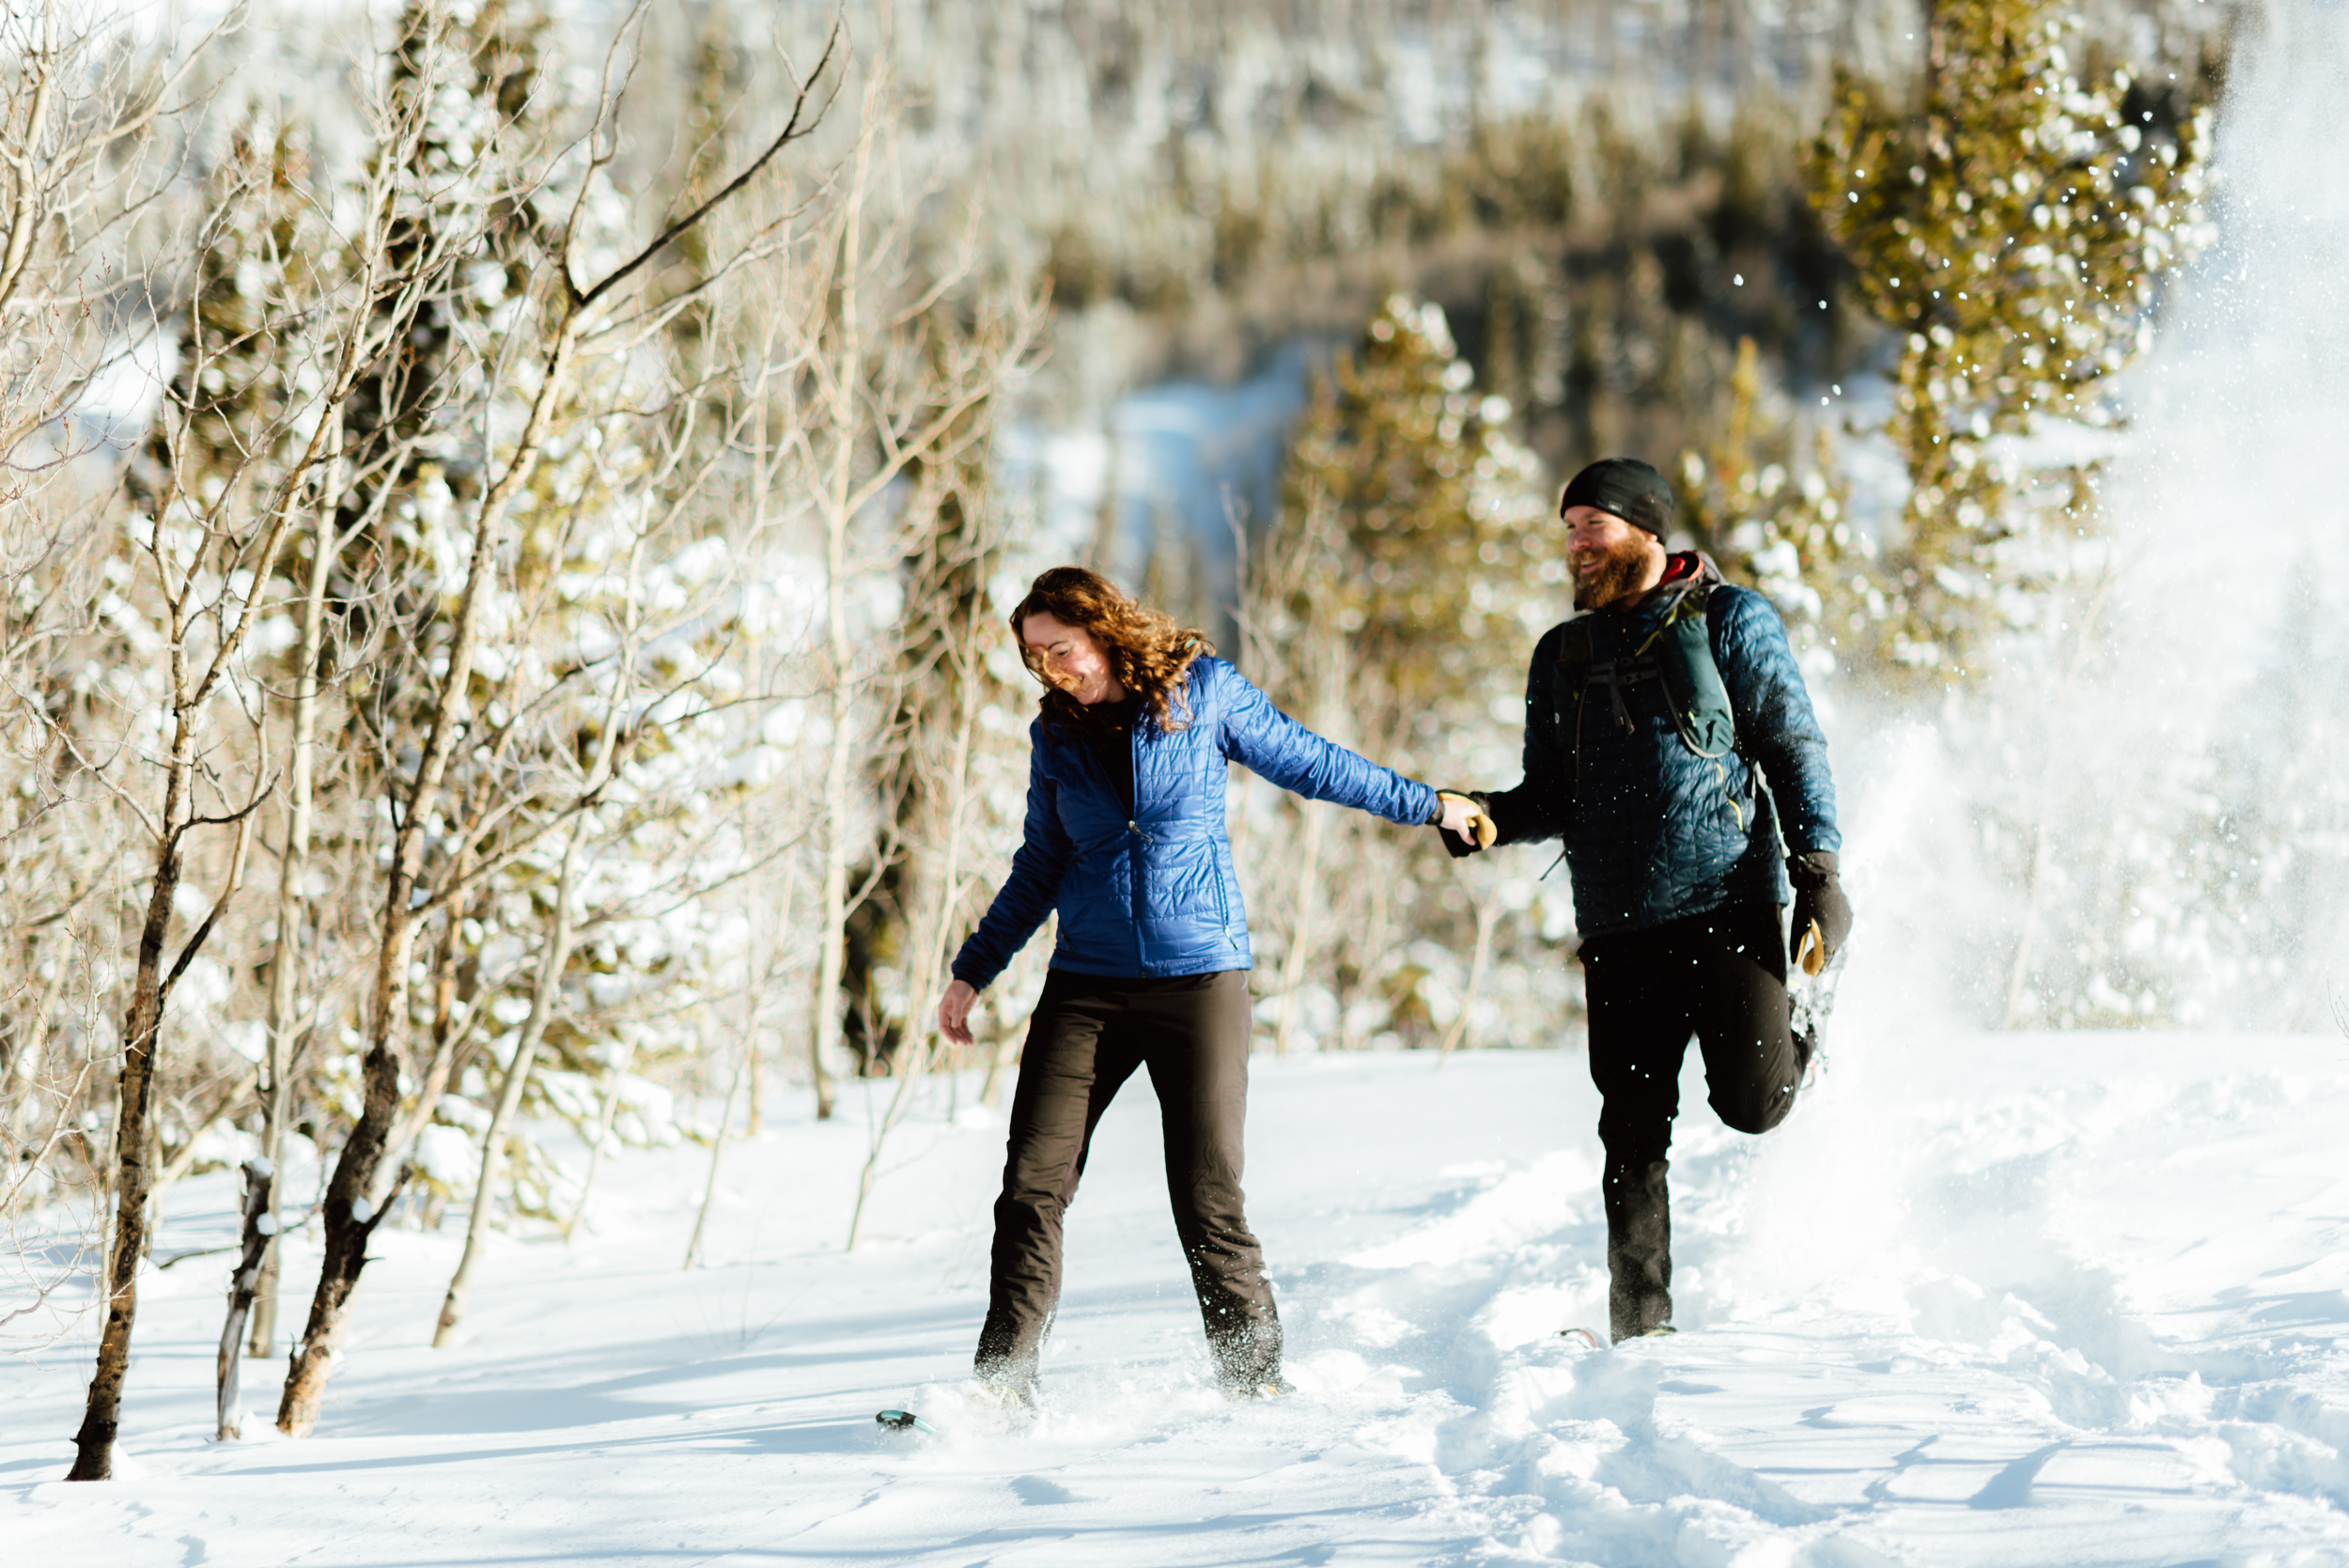 I love seeing the snow fall around Hannah and Nick at their snowshoeing hiking engagement shoot! This makes me really want to shoot my engagement photos in the winter!| Lost Lake engagement photos by intimate Colorado engagement photographer, Maddie Mae.